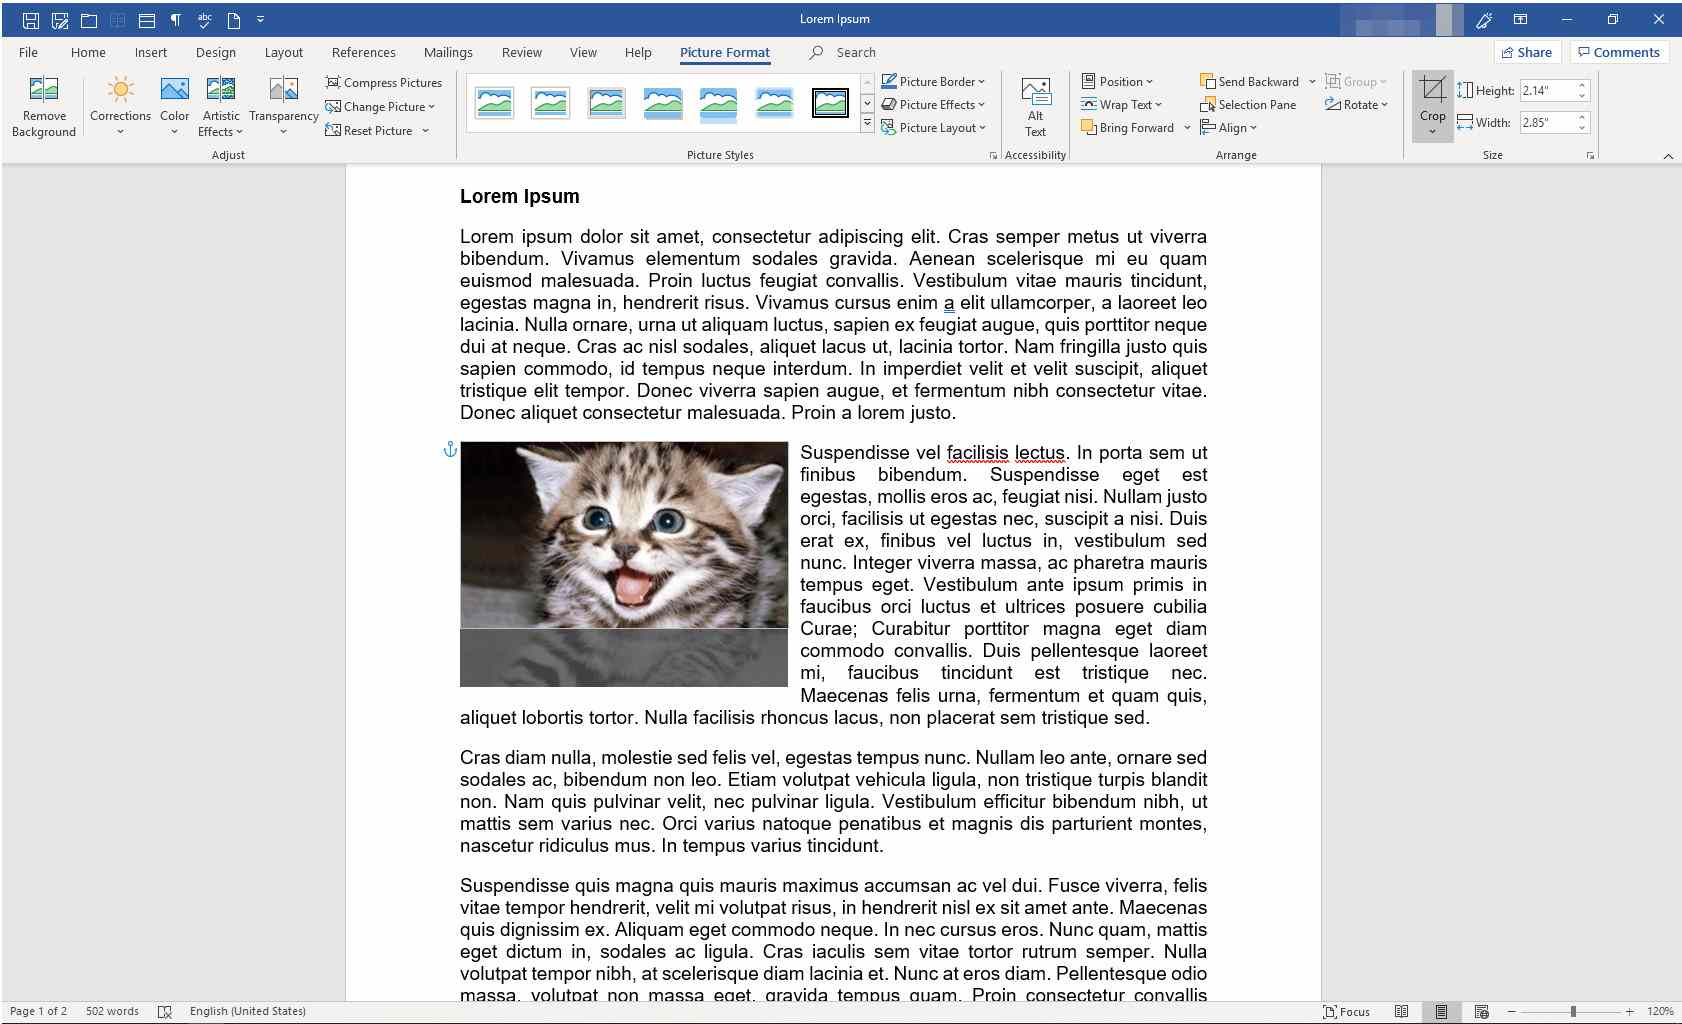 MS Word document with cropped image